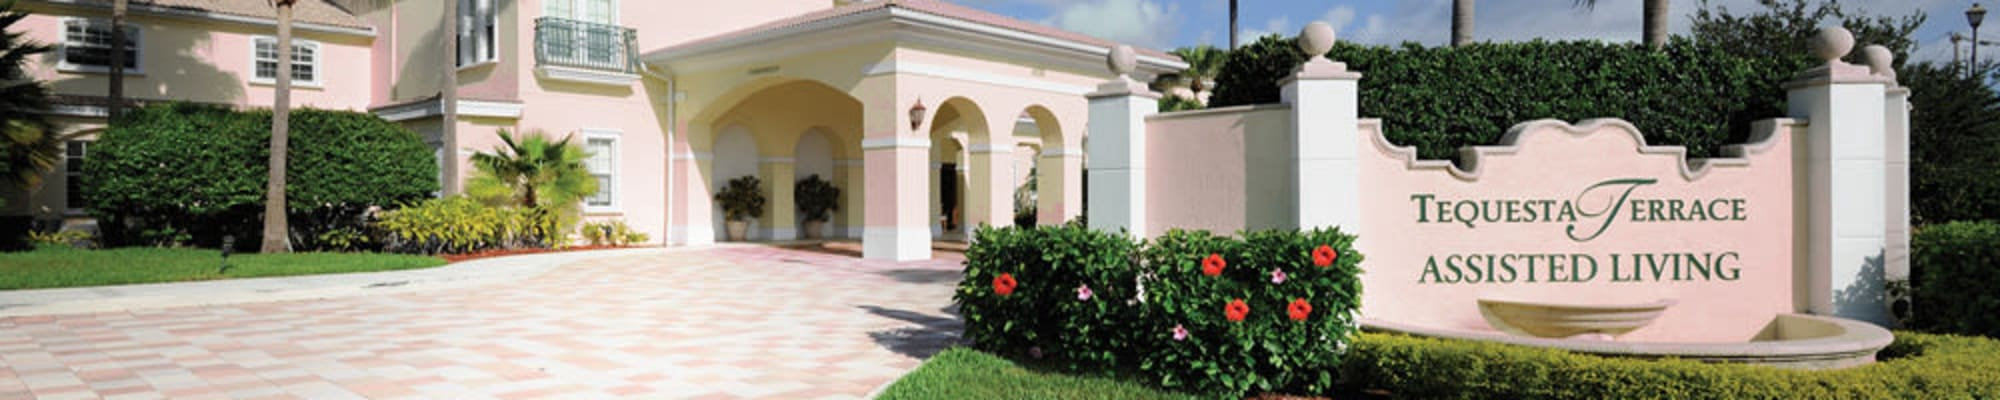 Activities and events at Tequesta Terrace in Tequesta, Florida